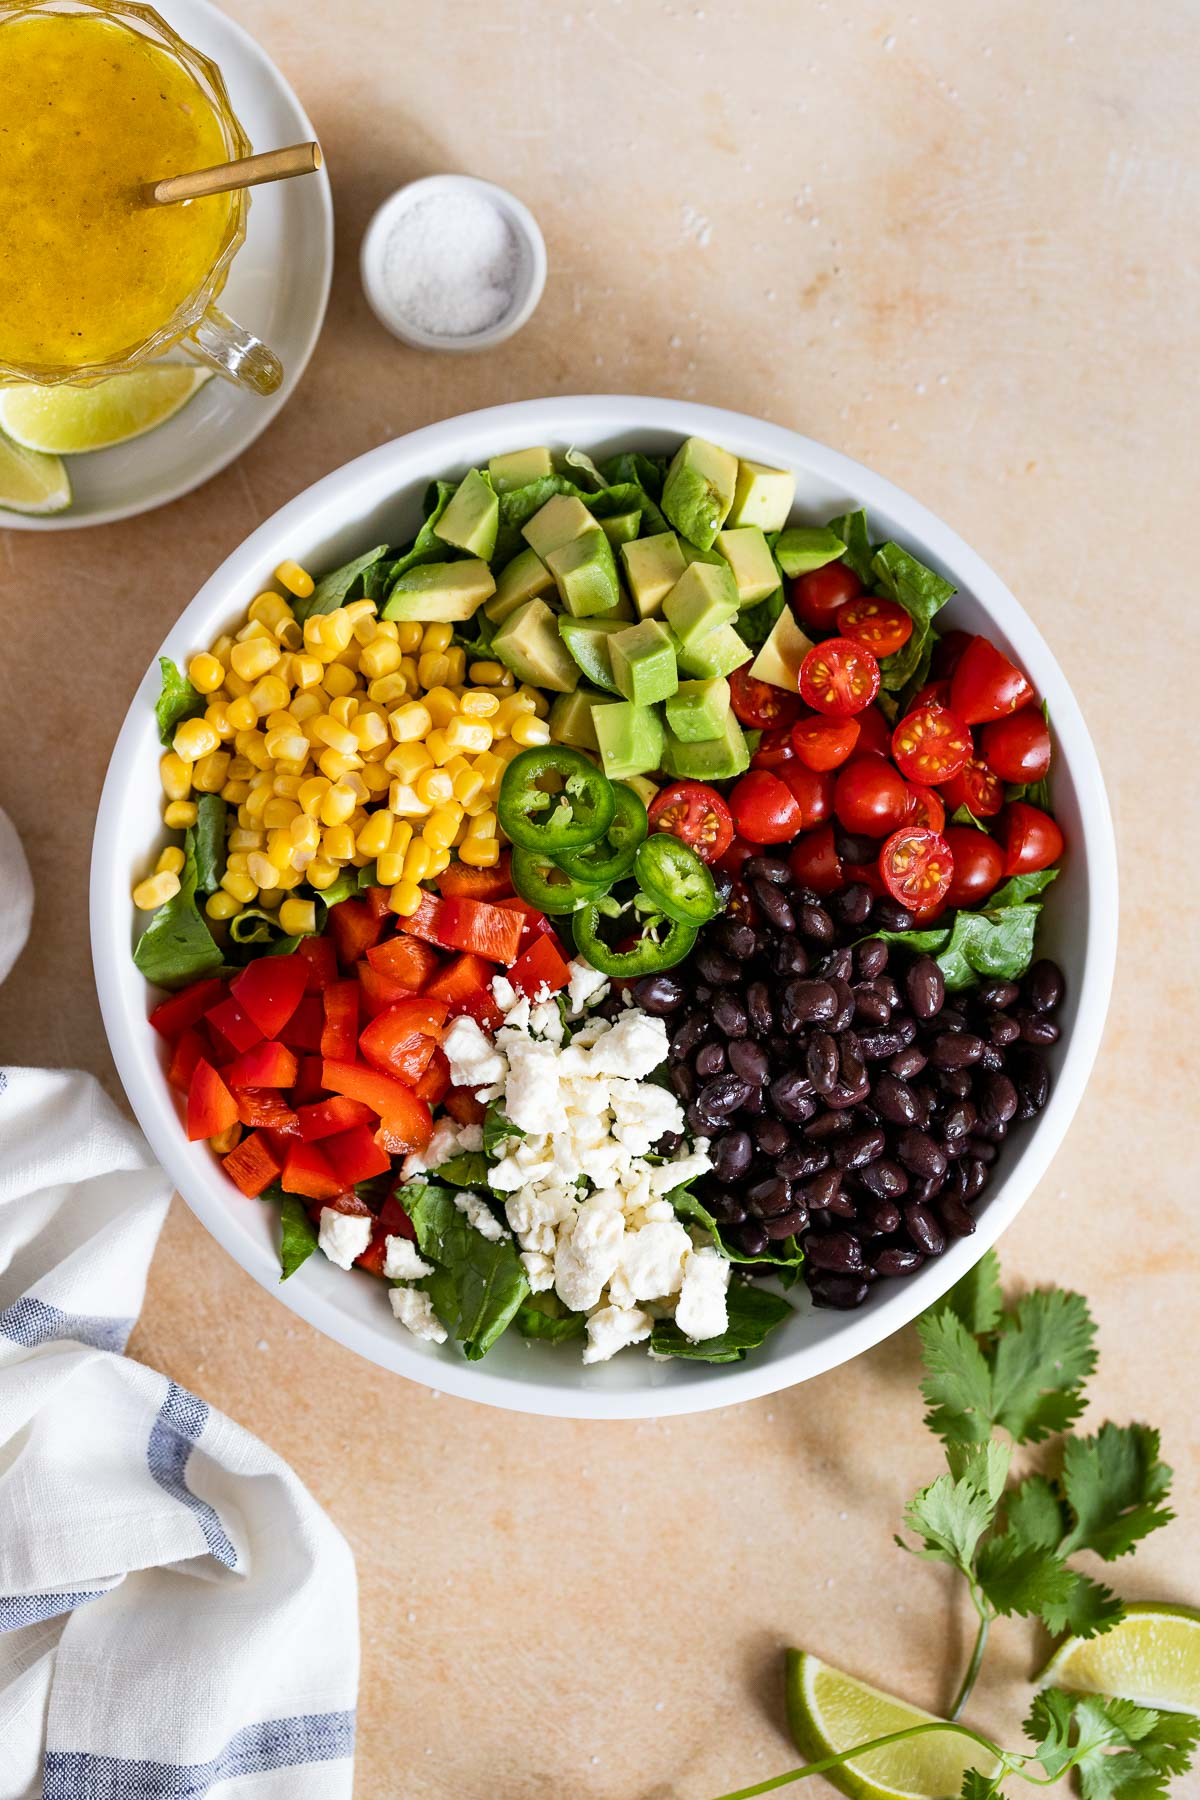 Corn, avocado, red bell pepper, tomato, black beans, and feta on top of romaine lettuce in a bowl.